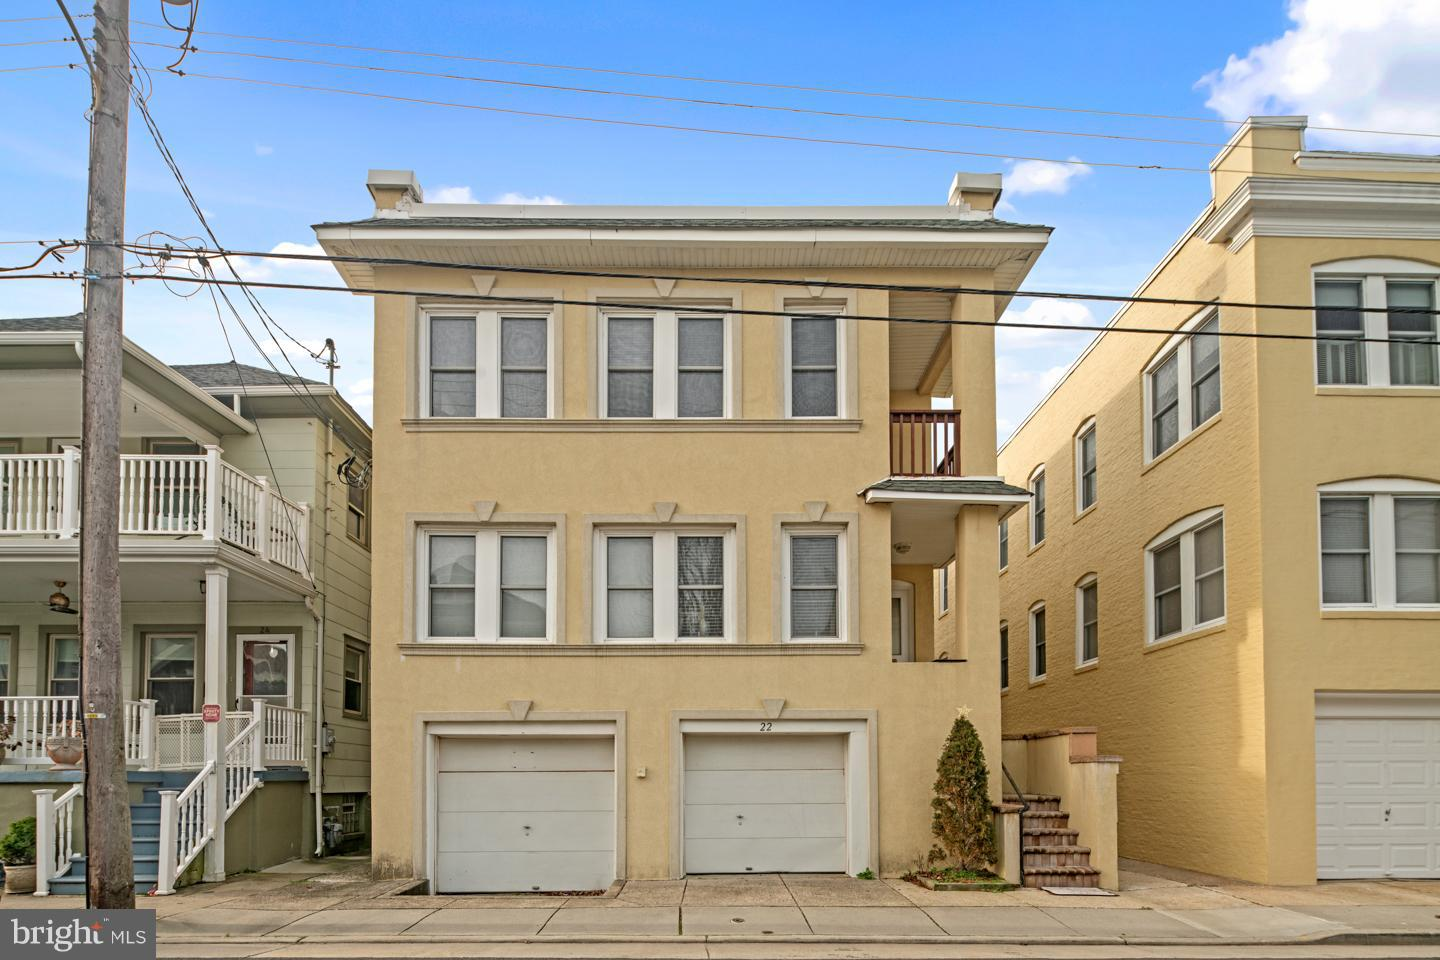 22 S RICHARDS AVENUE, VENTNOR CITY, NJ 08406